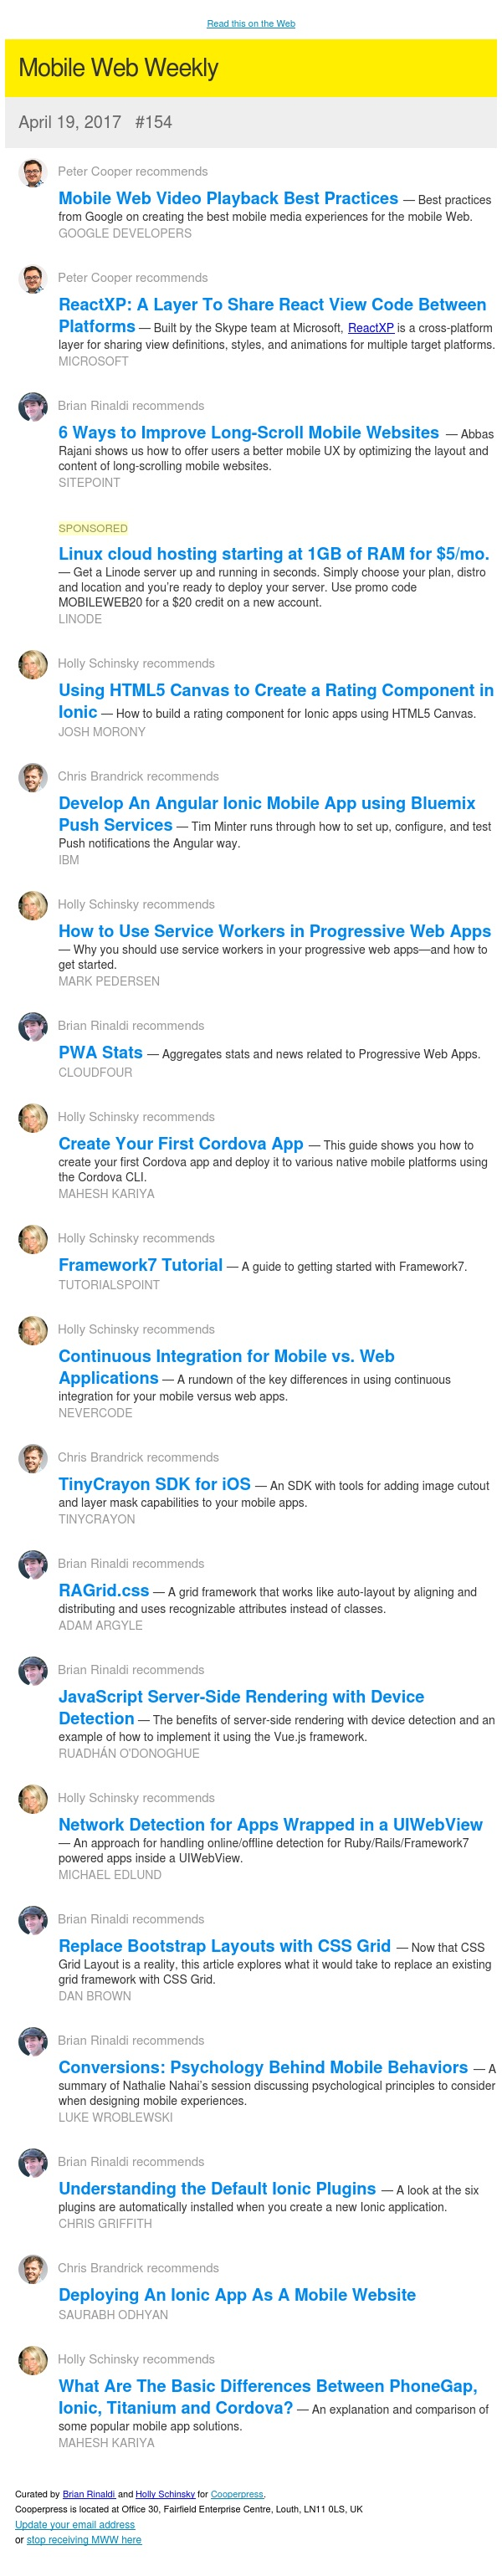 #154: Google's Mobile Web Video Playback Best Practices